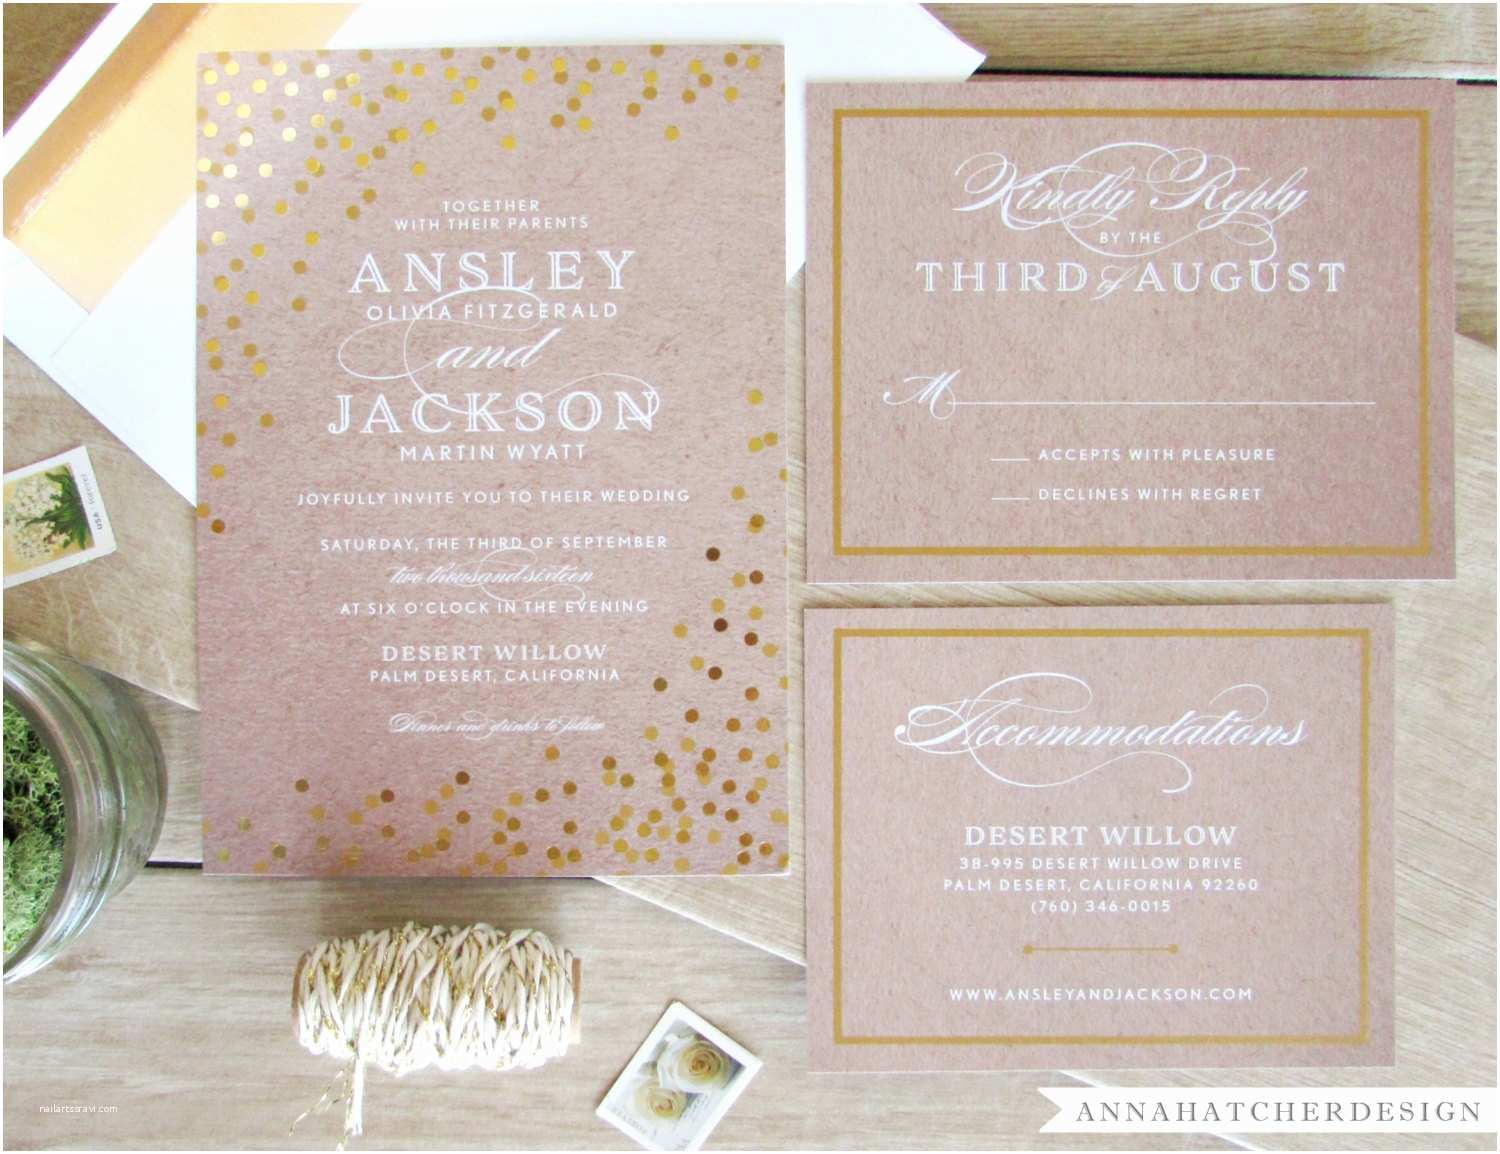 Foil Wedding Invitations Gold Foil Wedding Invitation with Matching Reply and Enclosure